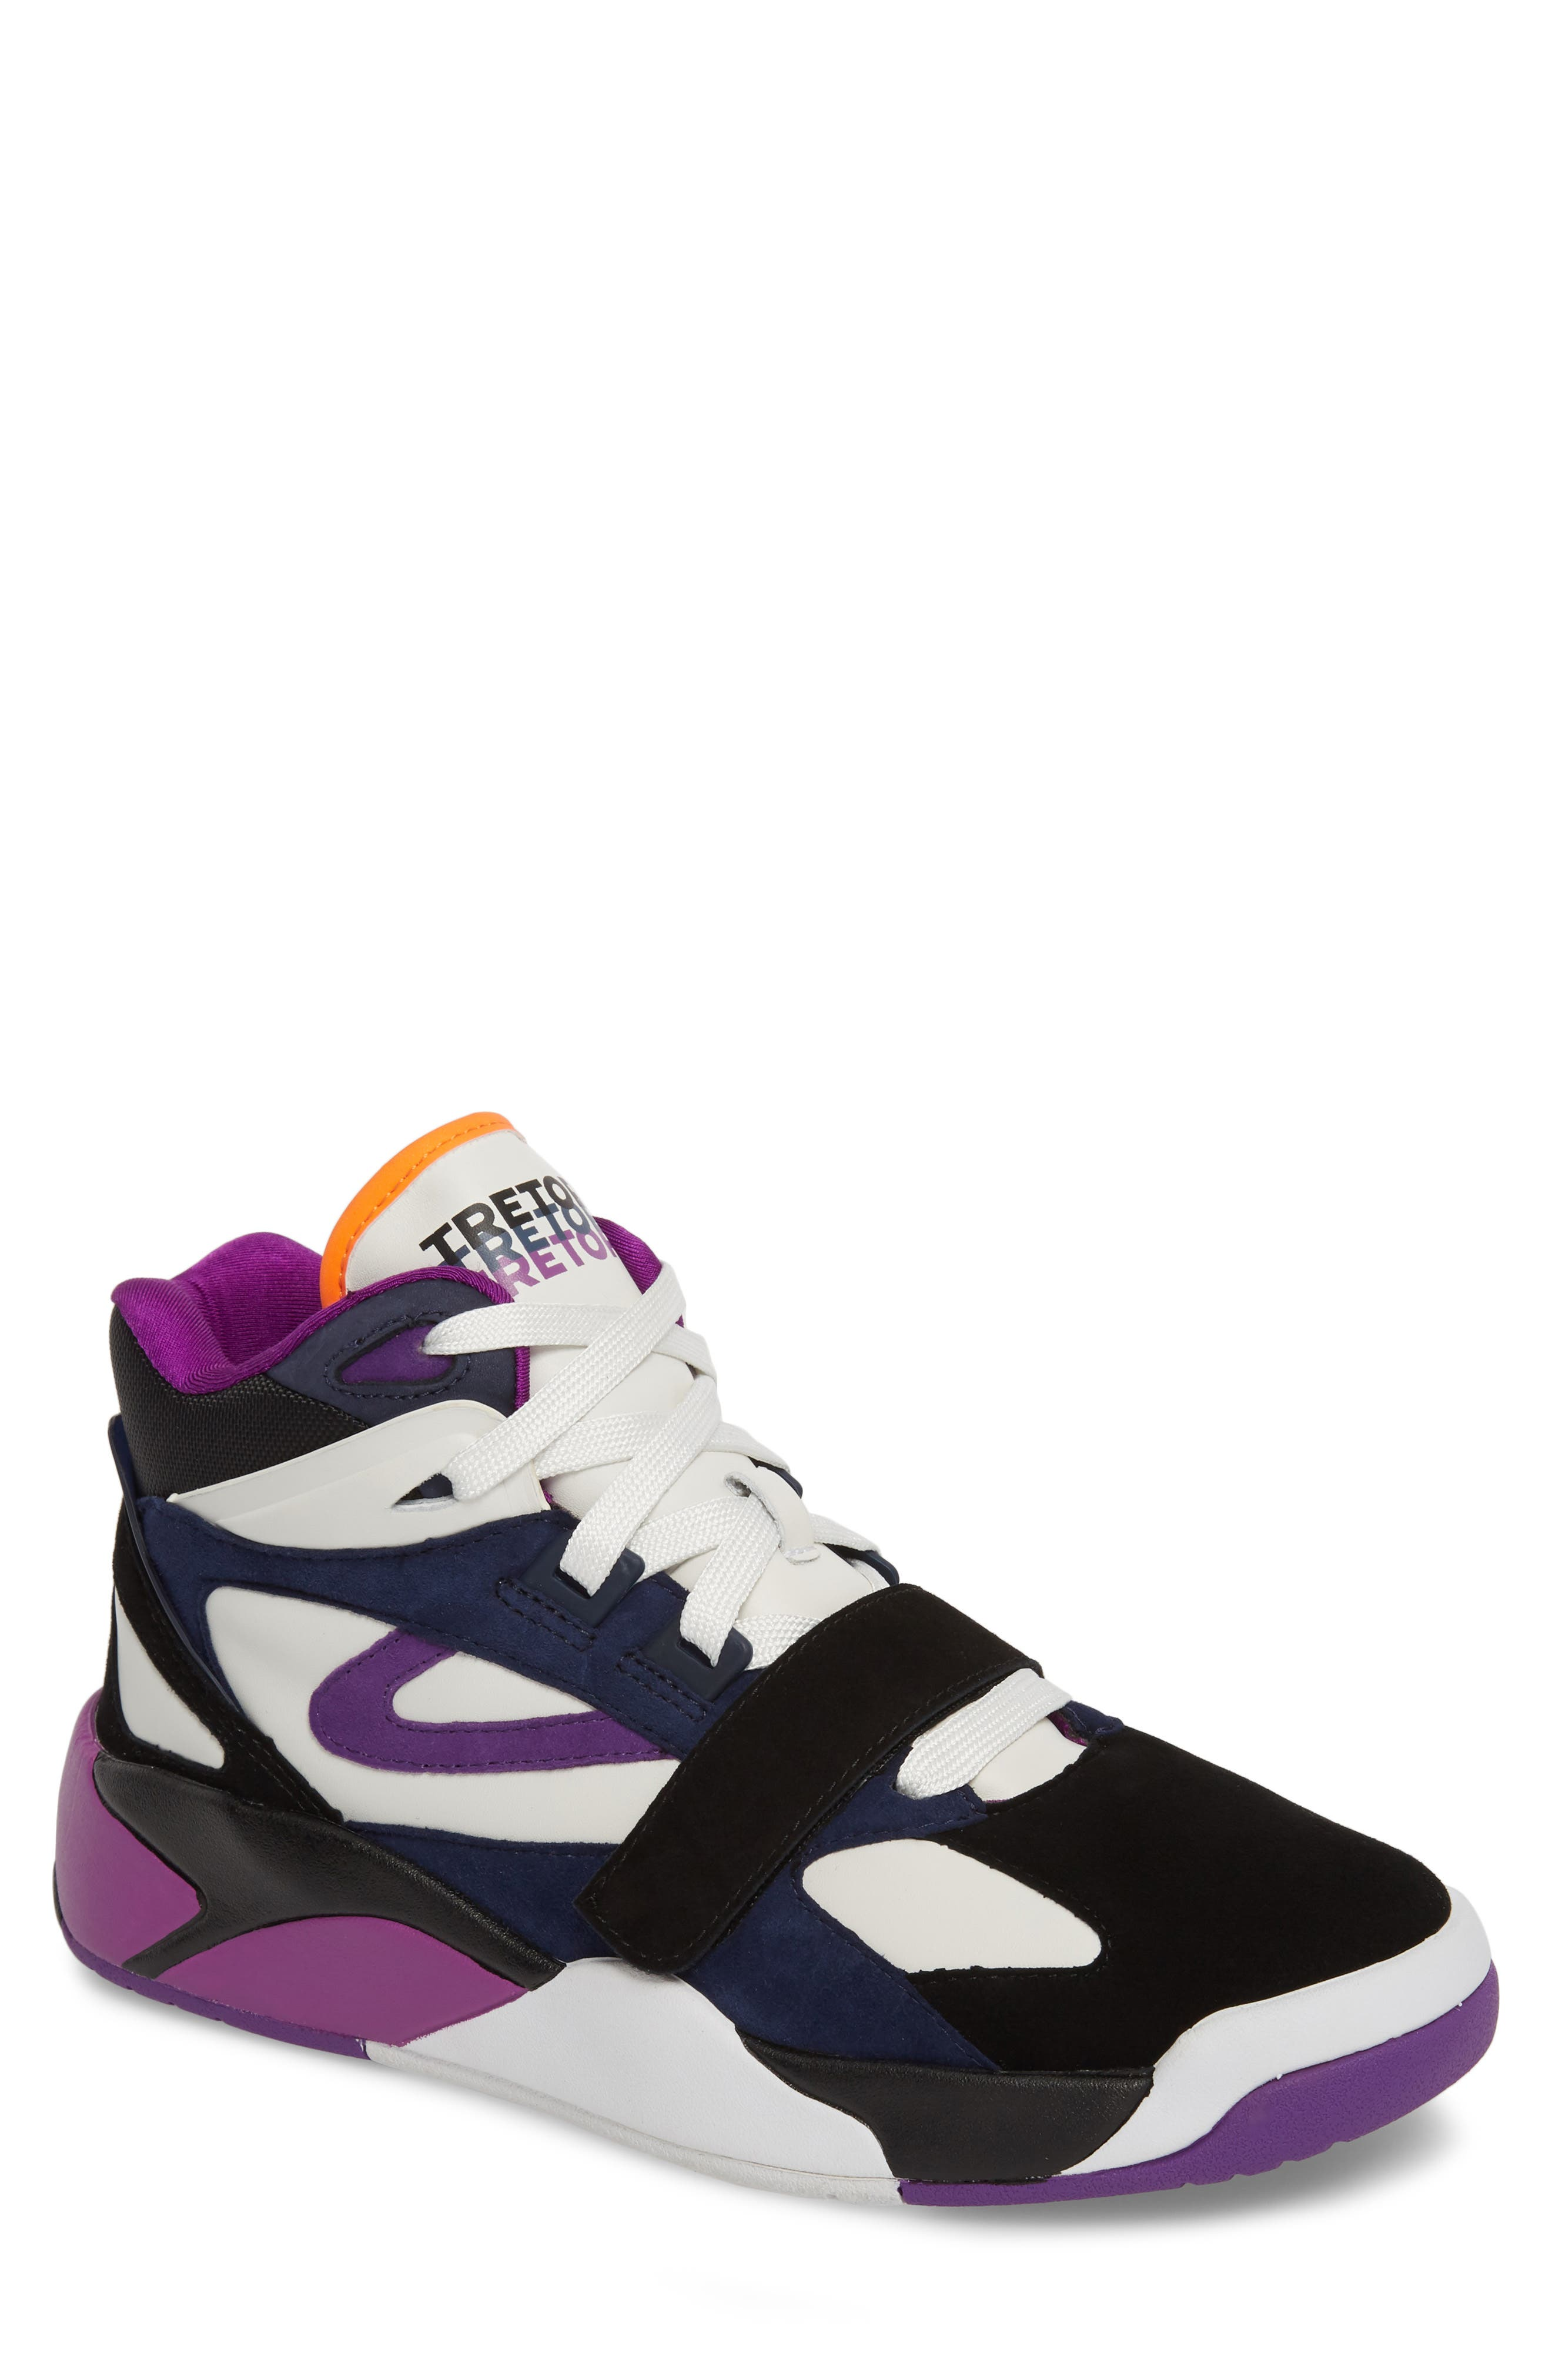 Andre 3000 Bostad 2 High Top Sneaker,                         Main,                         color, 510